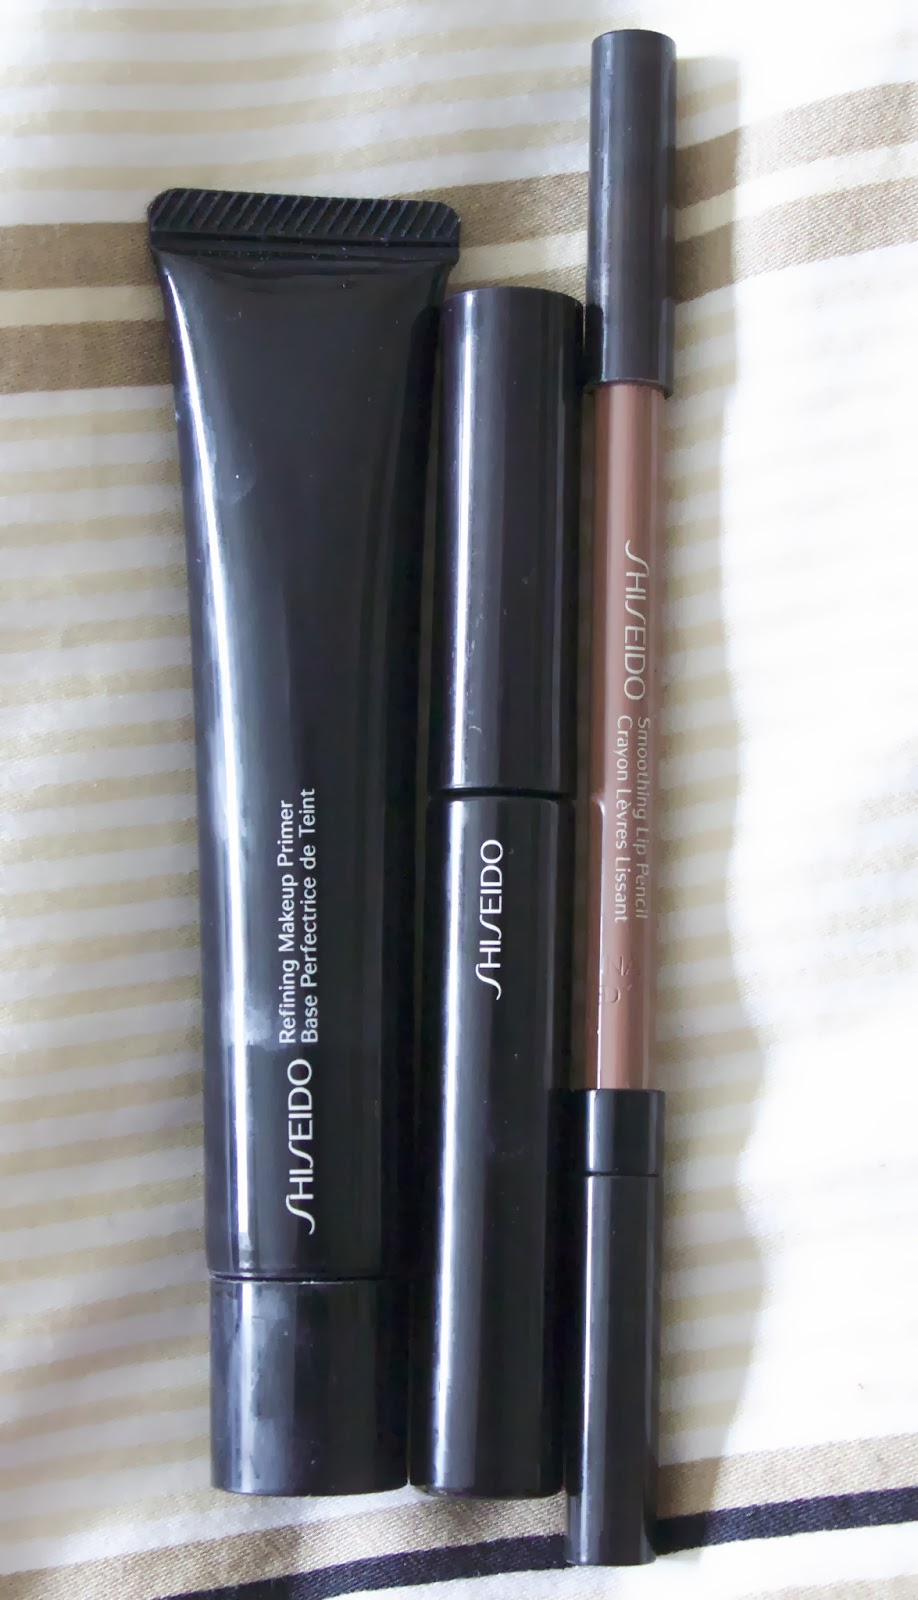 Lastly, I've been trying out some of the Shiseido makeup for the first time. I have the Refining Makeup Primer, Nourishing Mascara Base and a lip pencil in ...